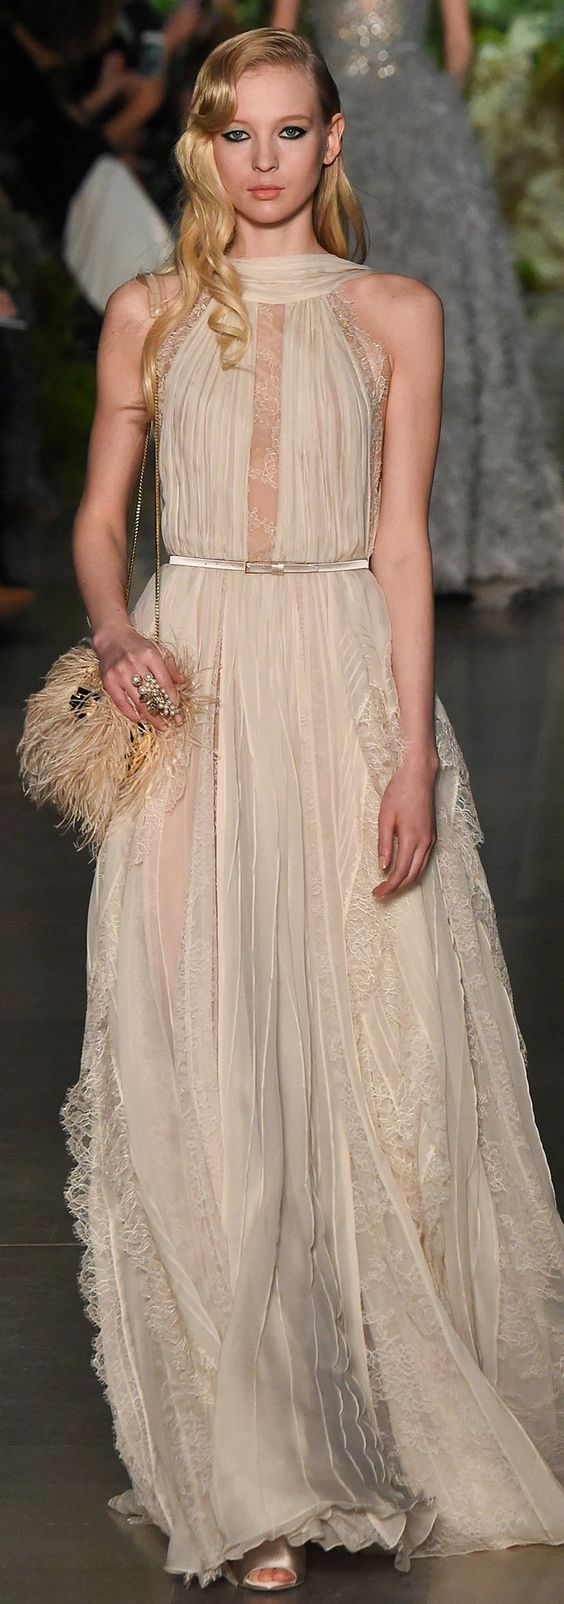 Elie Saab Spring 2015 Couture - Collection jaglady